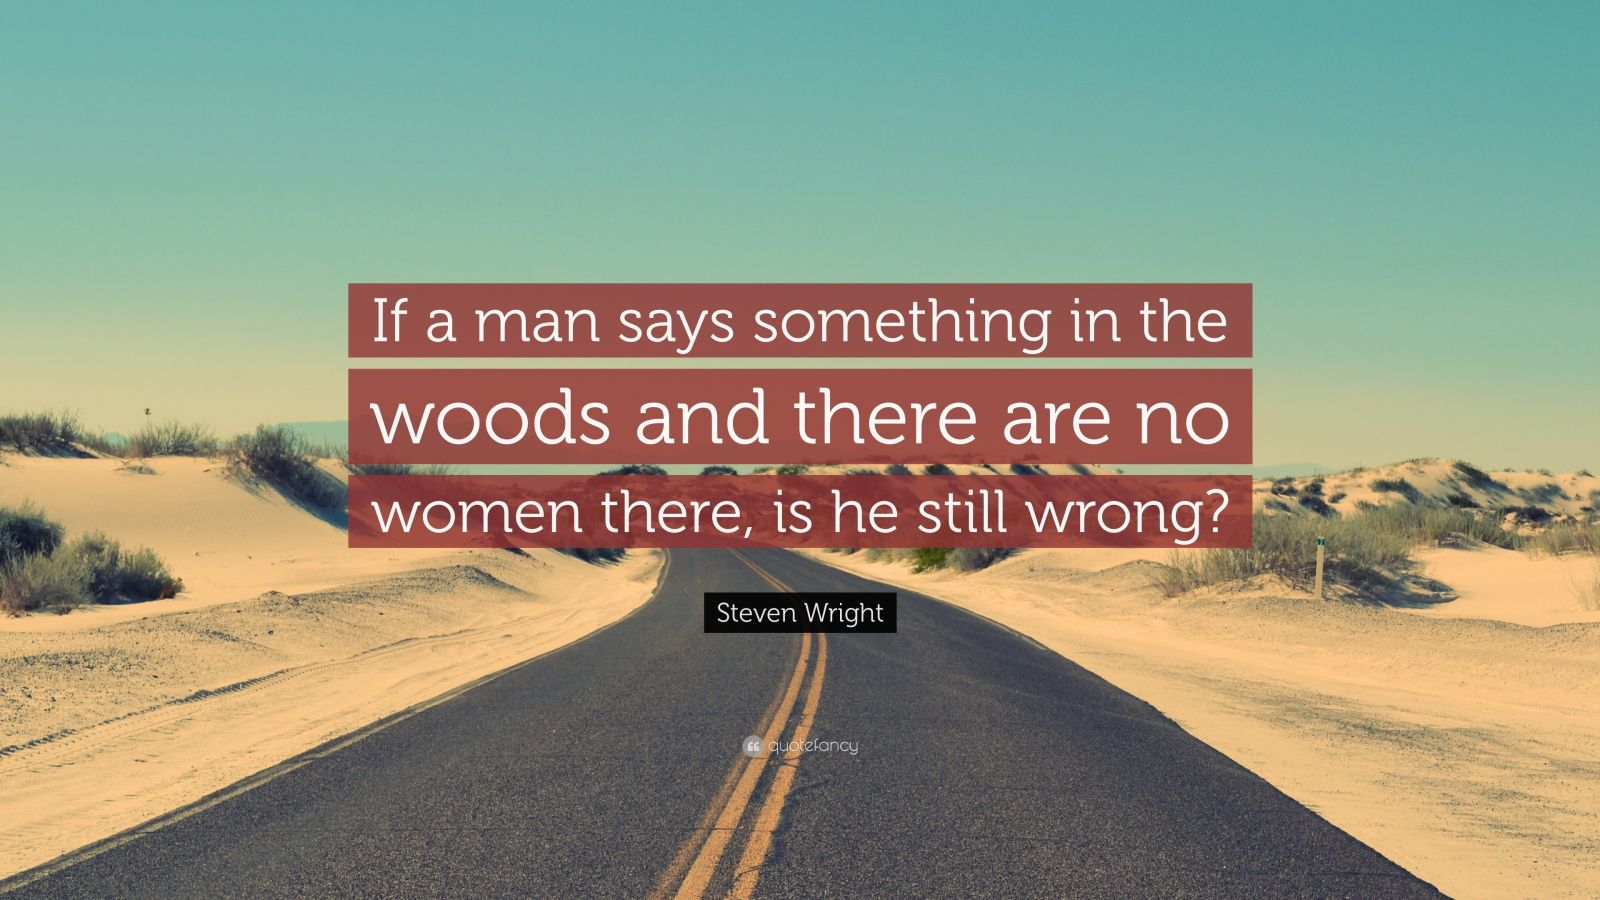 """Steven Wright Quote: """"If a man says something in the woods and there are no women there, is he still wrong?"""""""